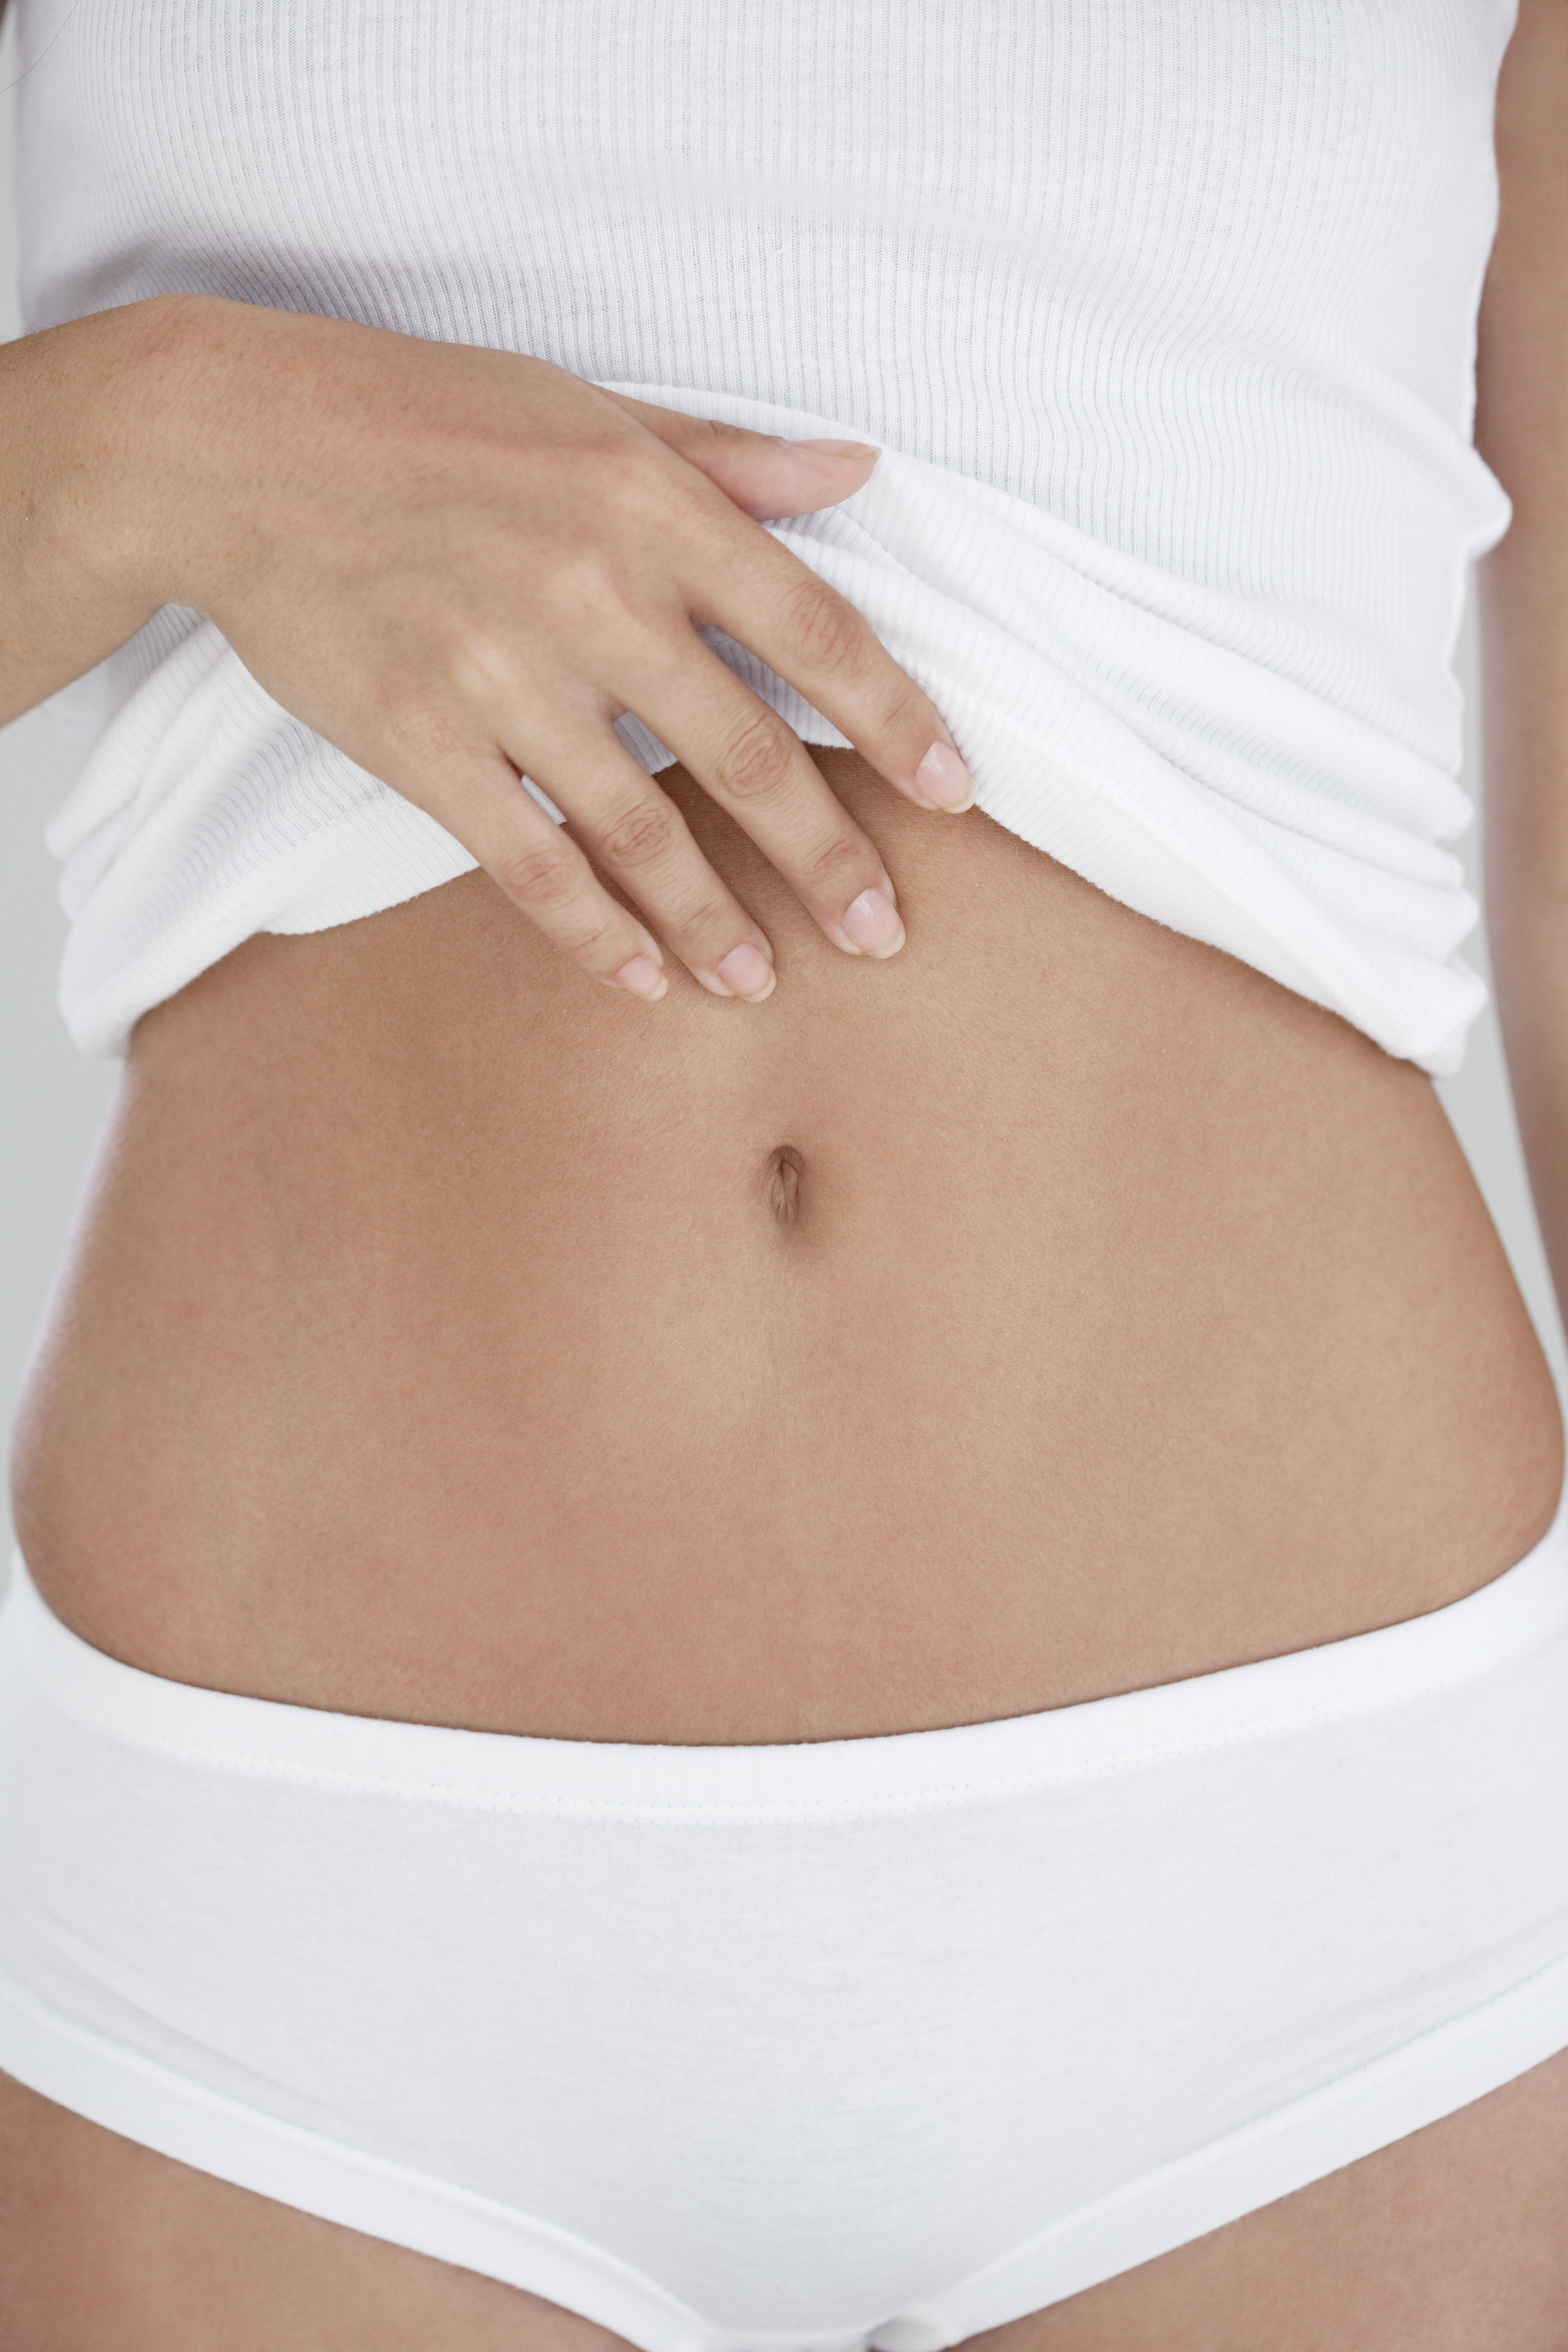 How to remove belly hair with waxing solutioingenieria Gallery